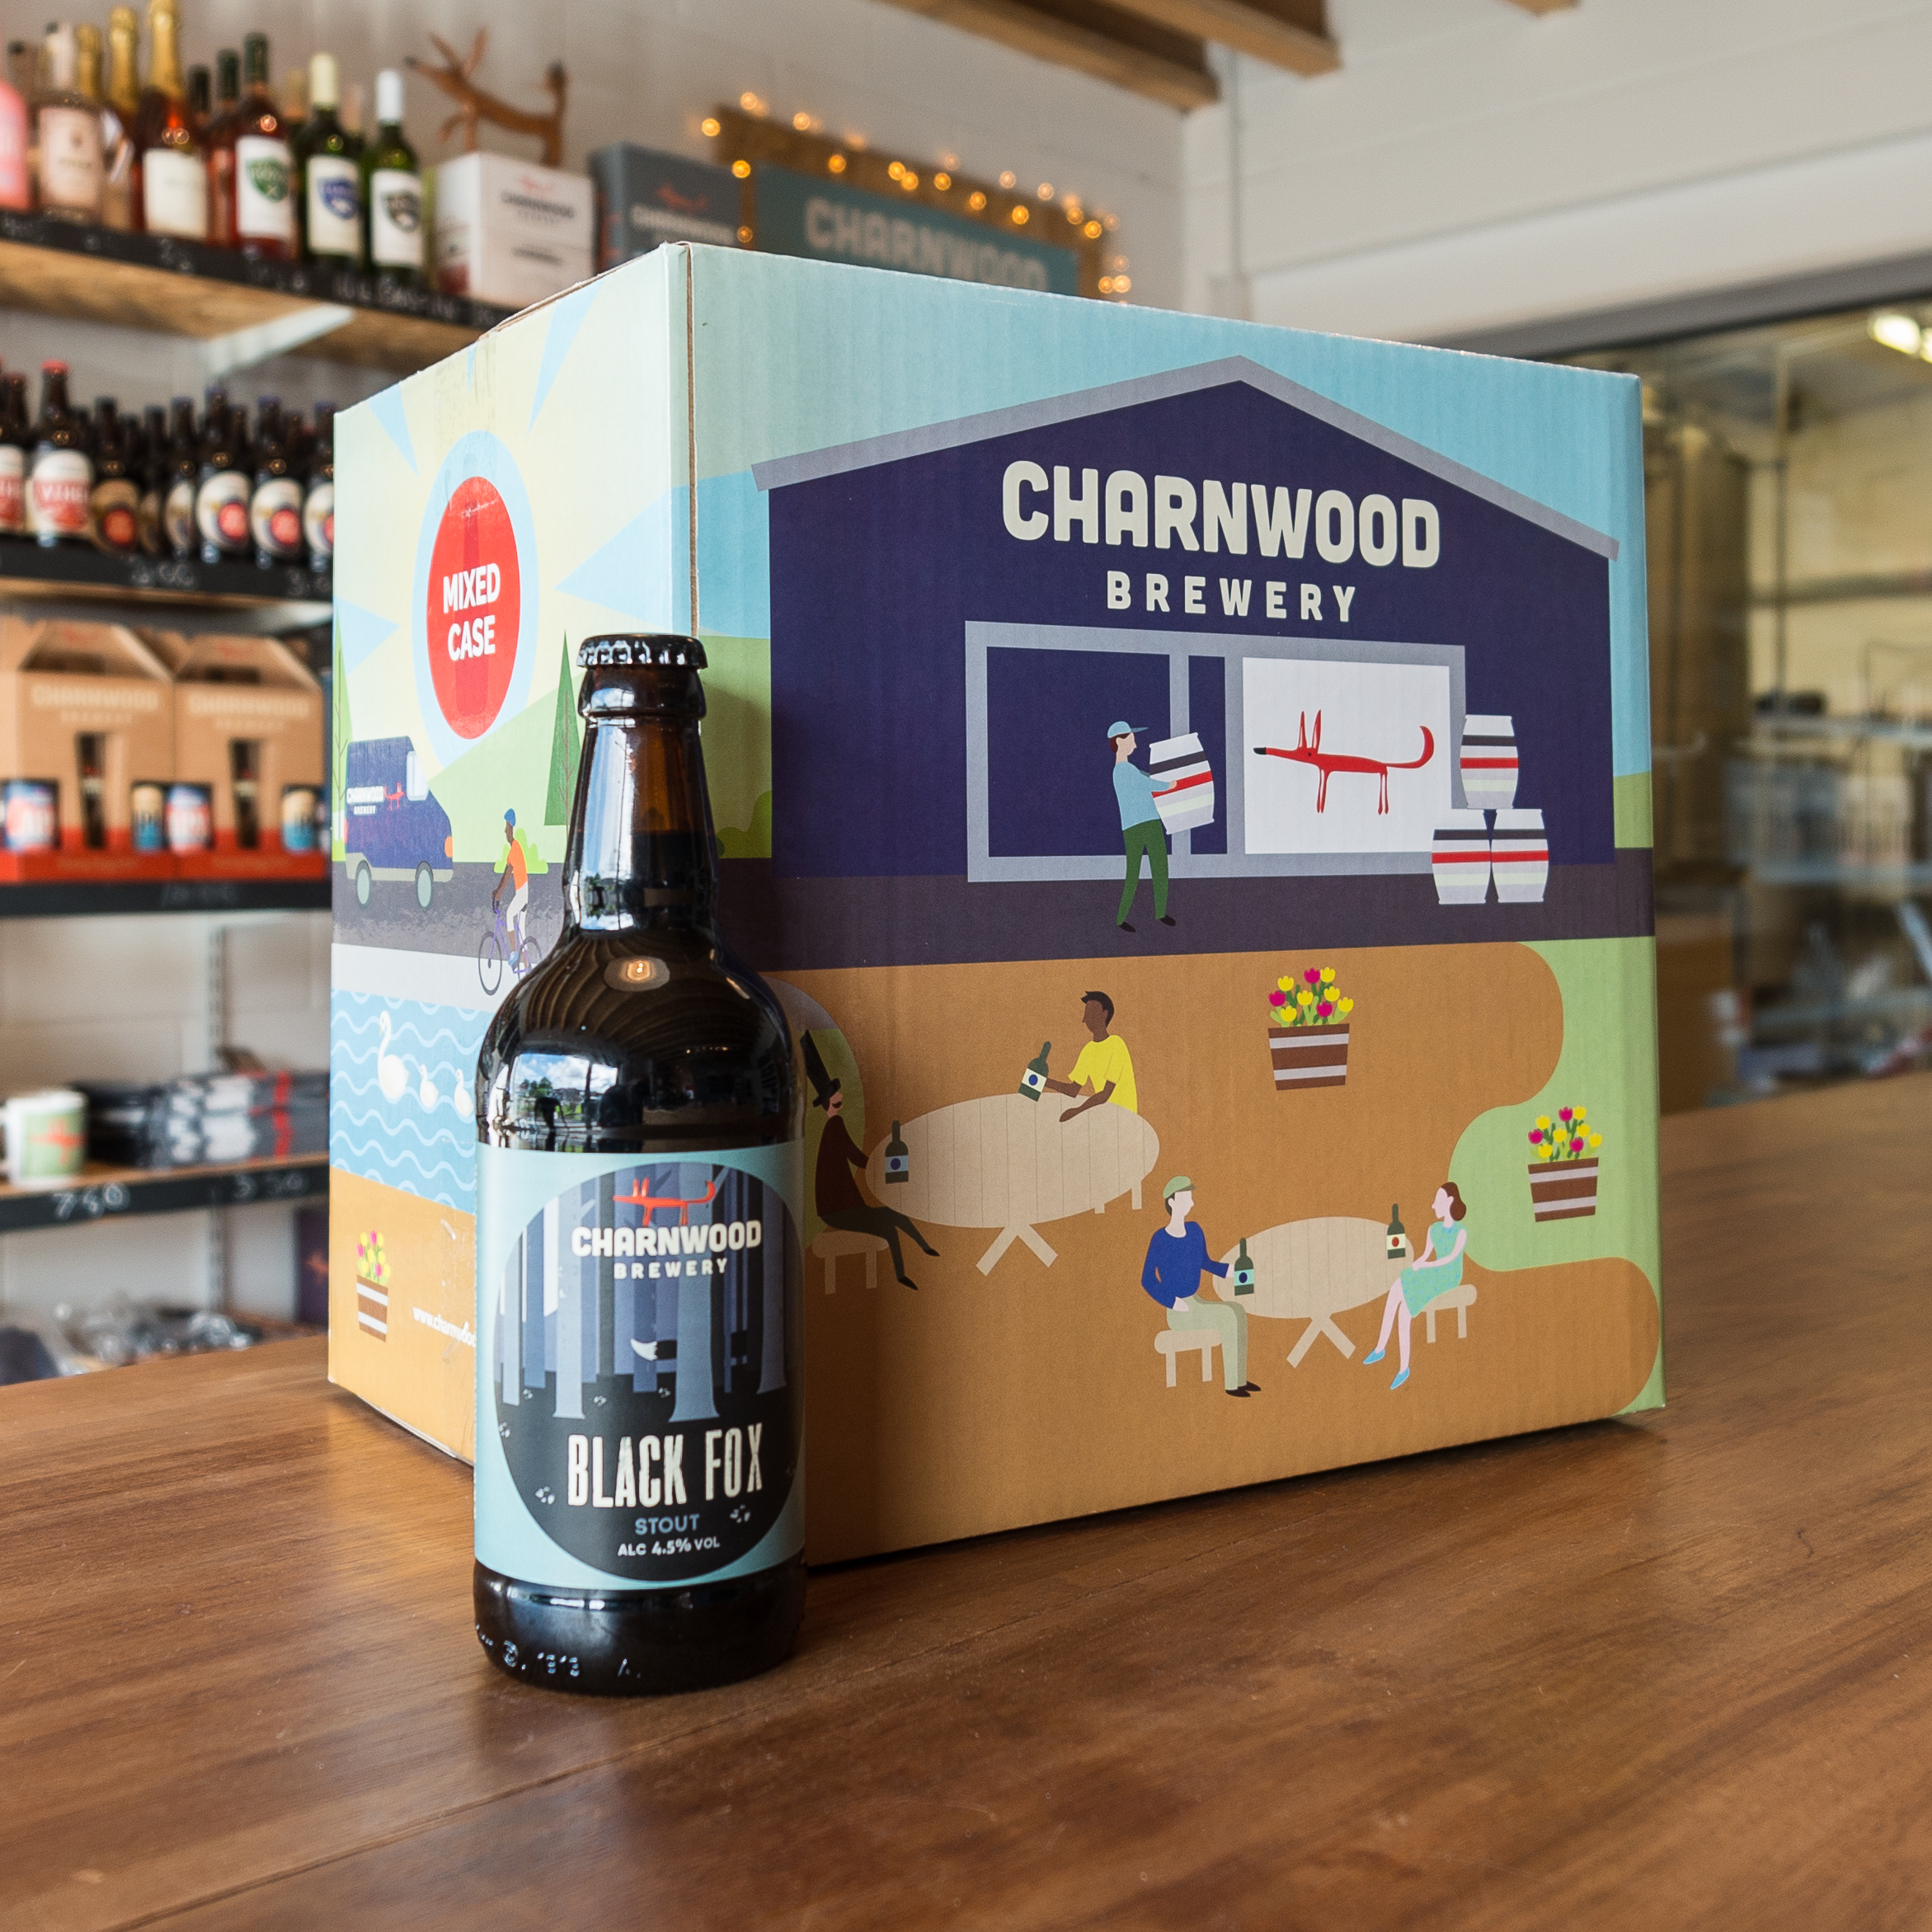 Black Fox case from Charnwood Brewery